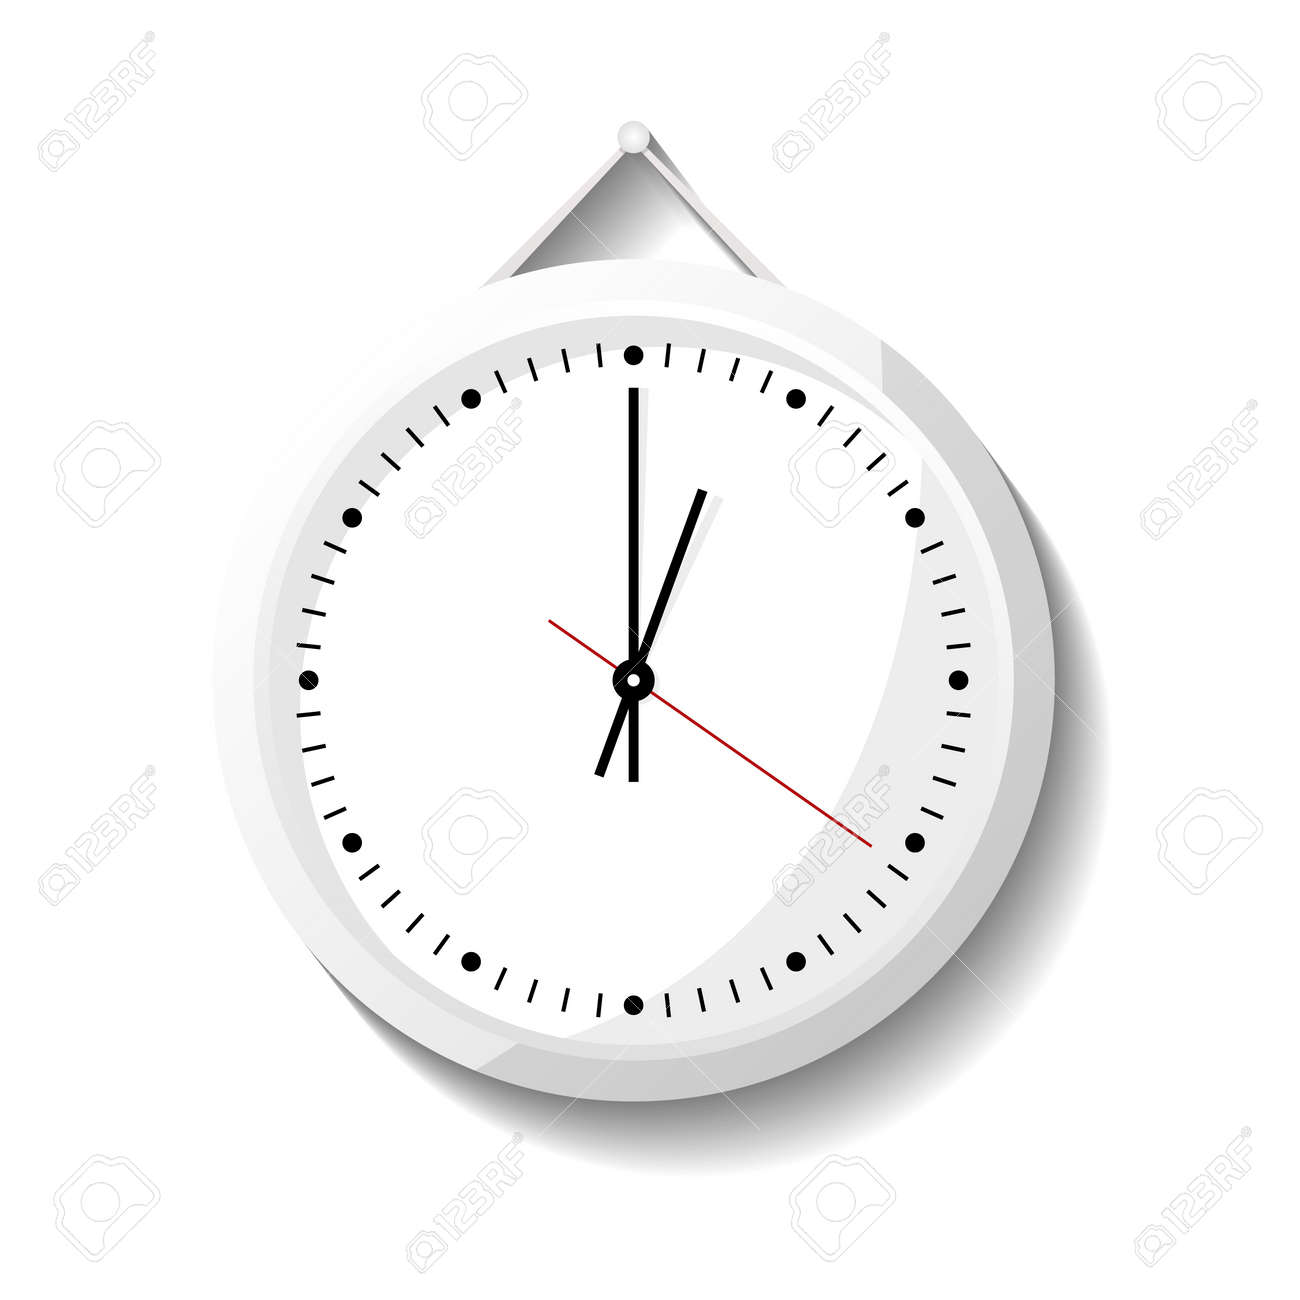 Round office wall clock icon  Analog chronometer isolated vector